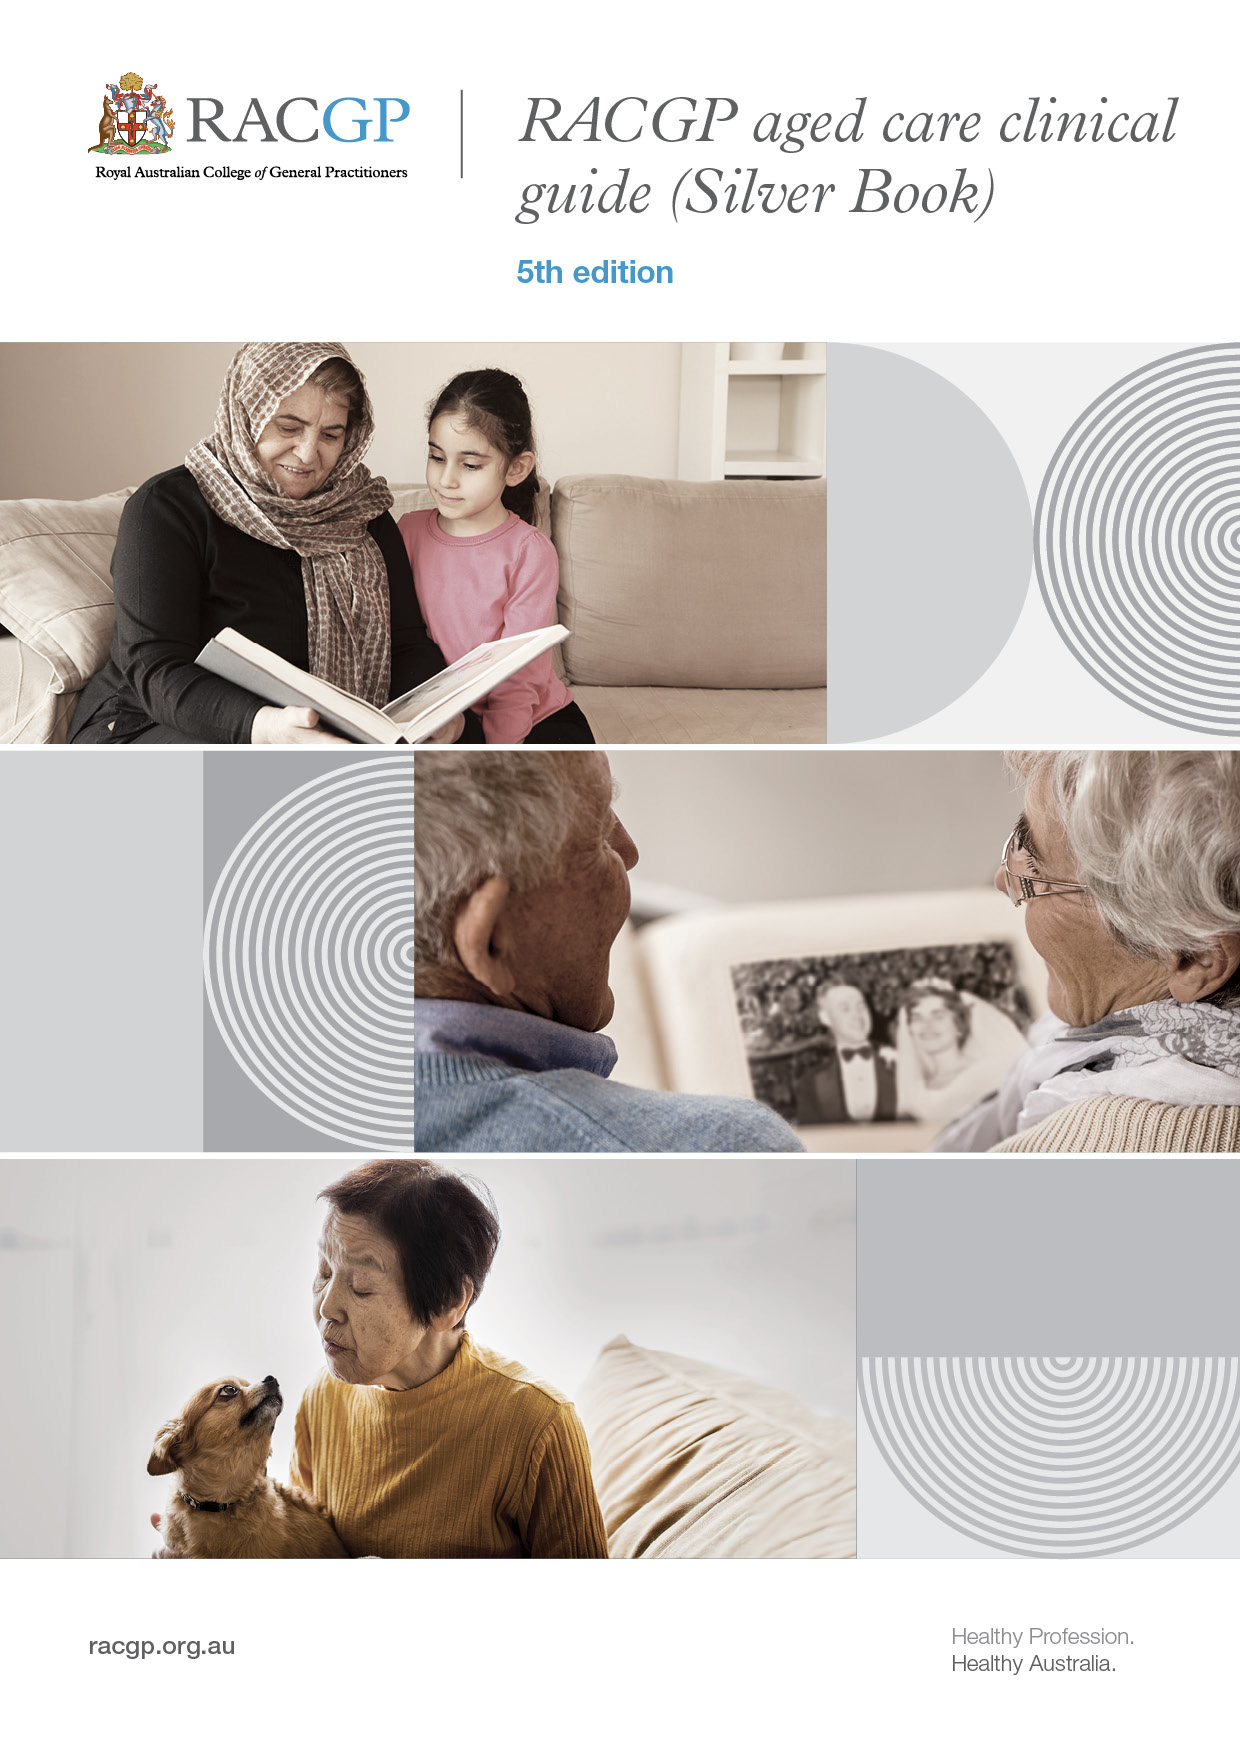 RACGP aged care clinical guide (Silver Book)